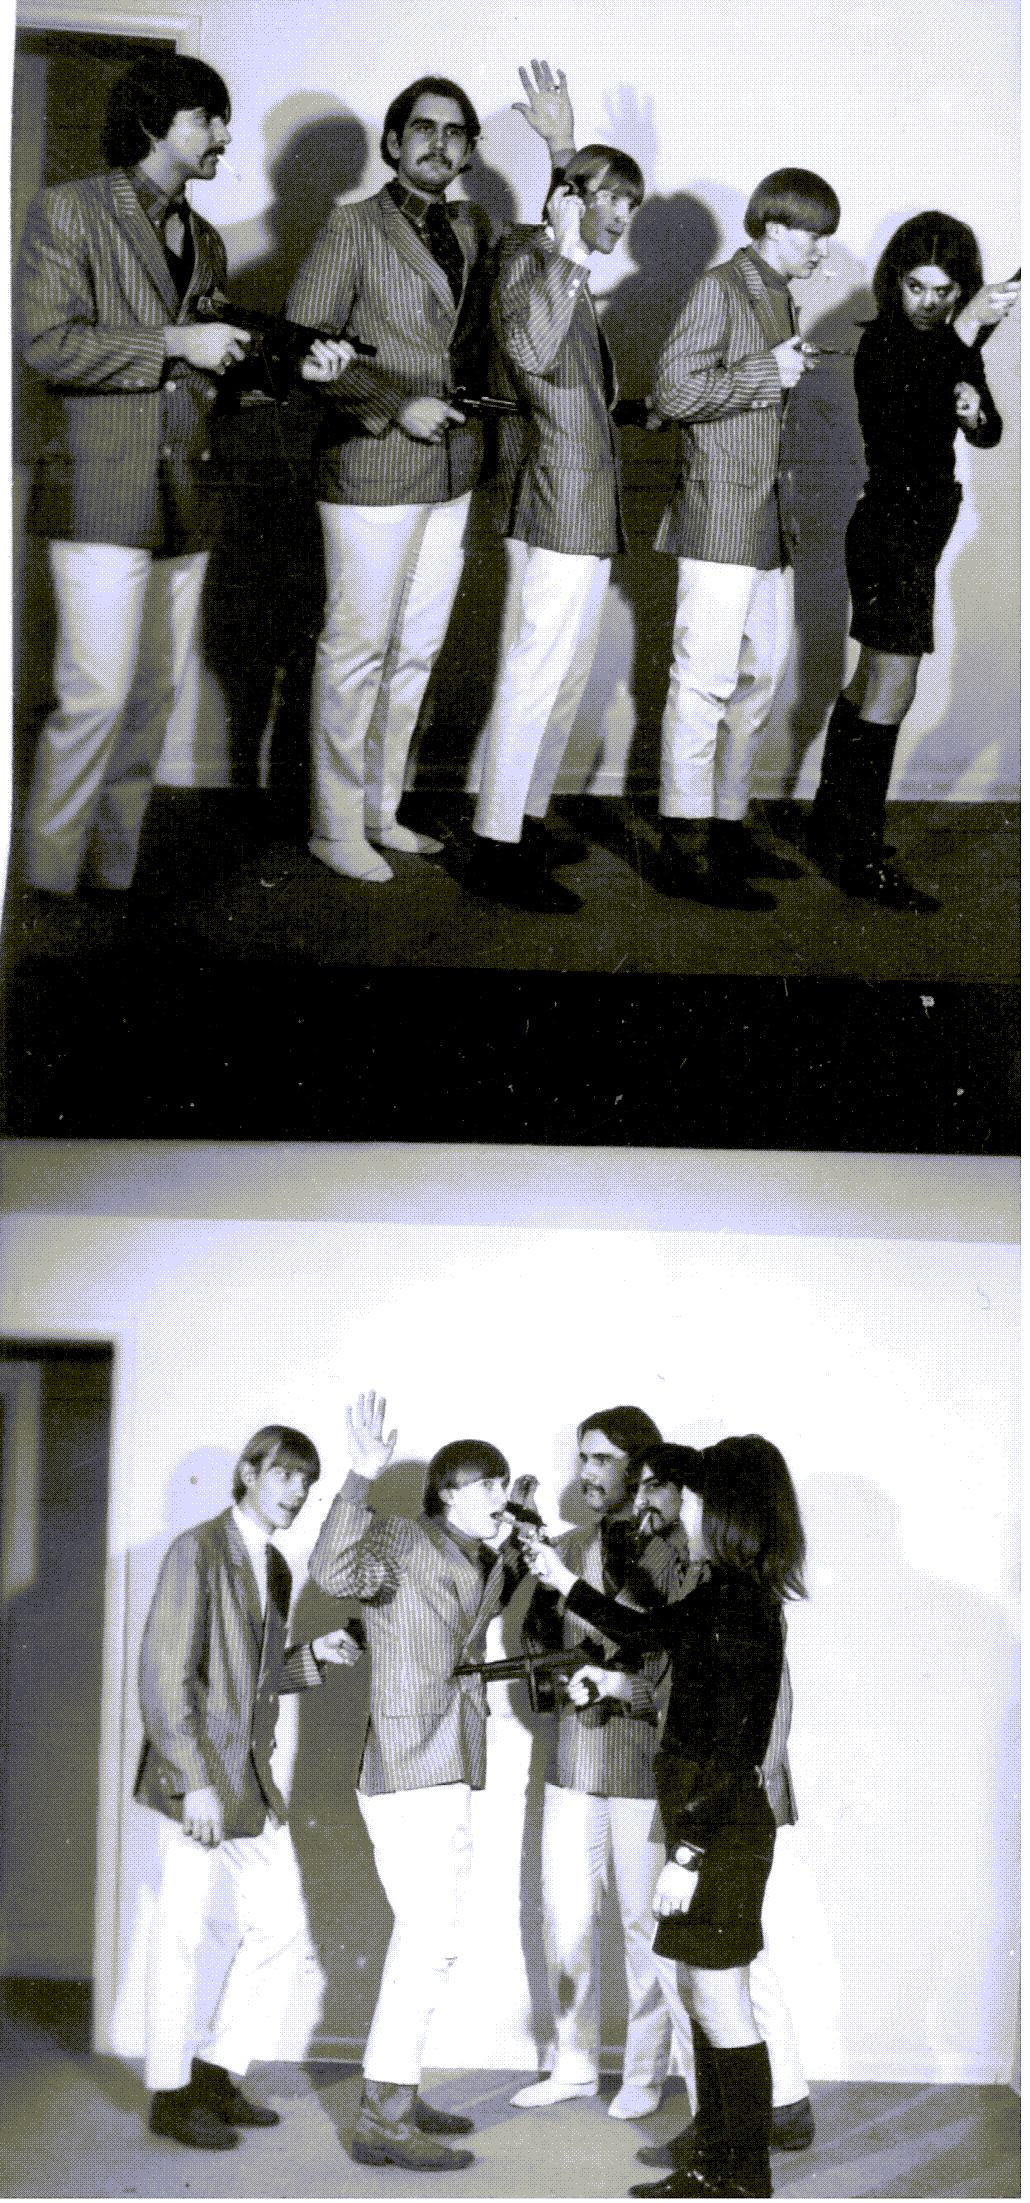 The Jerms group photo 1967.